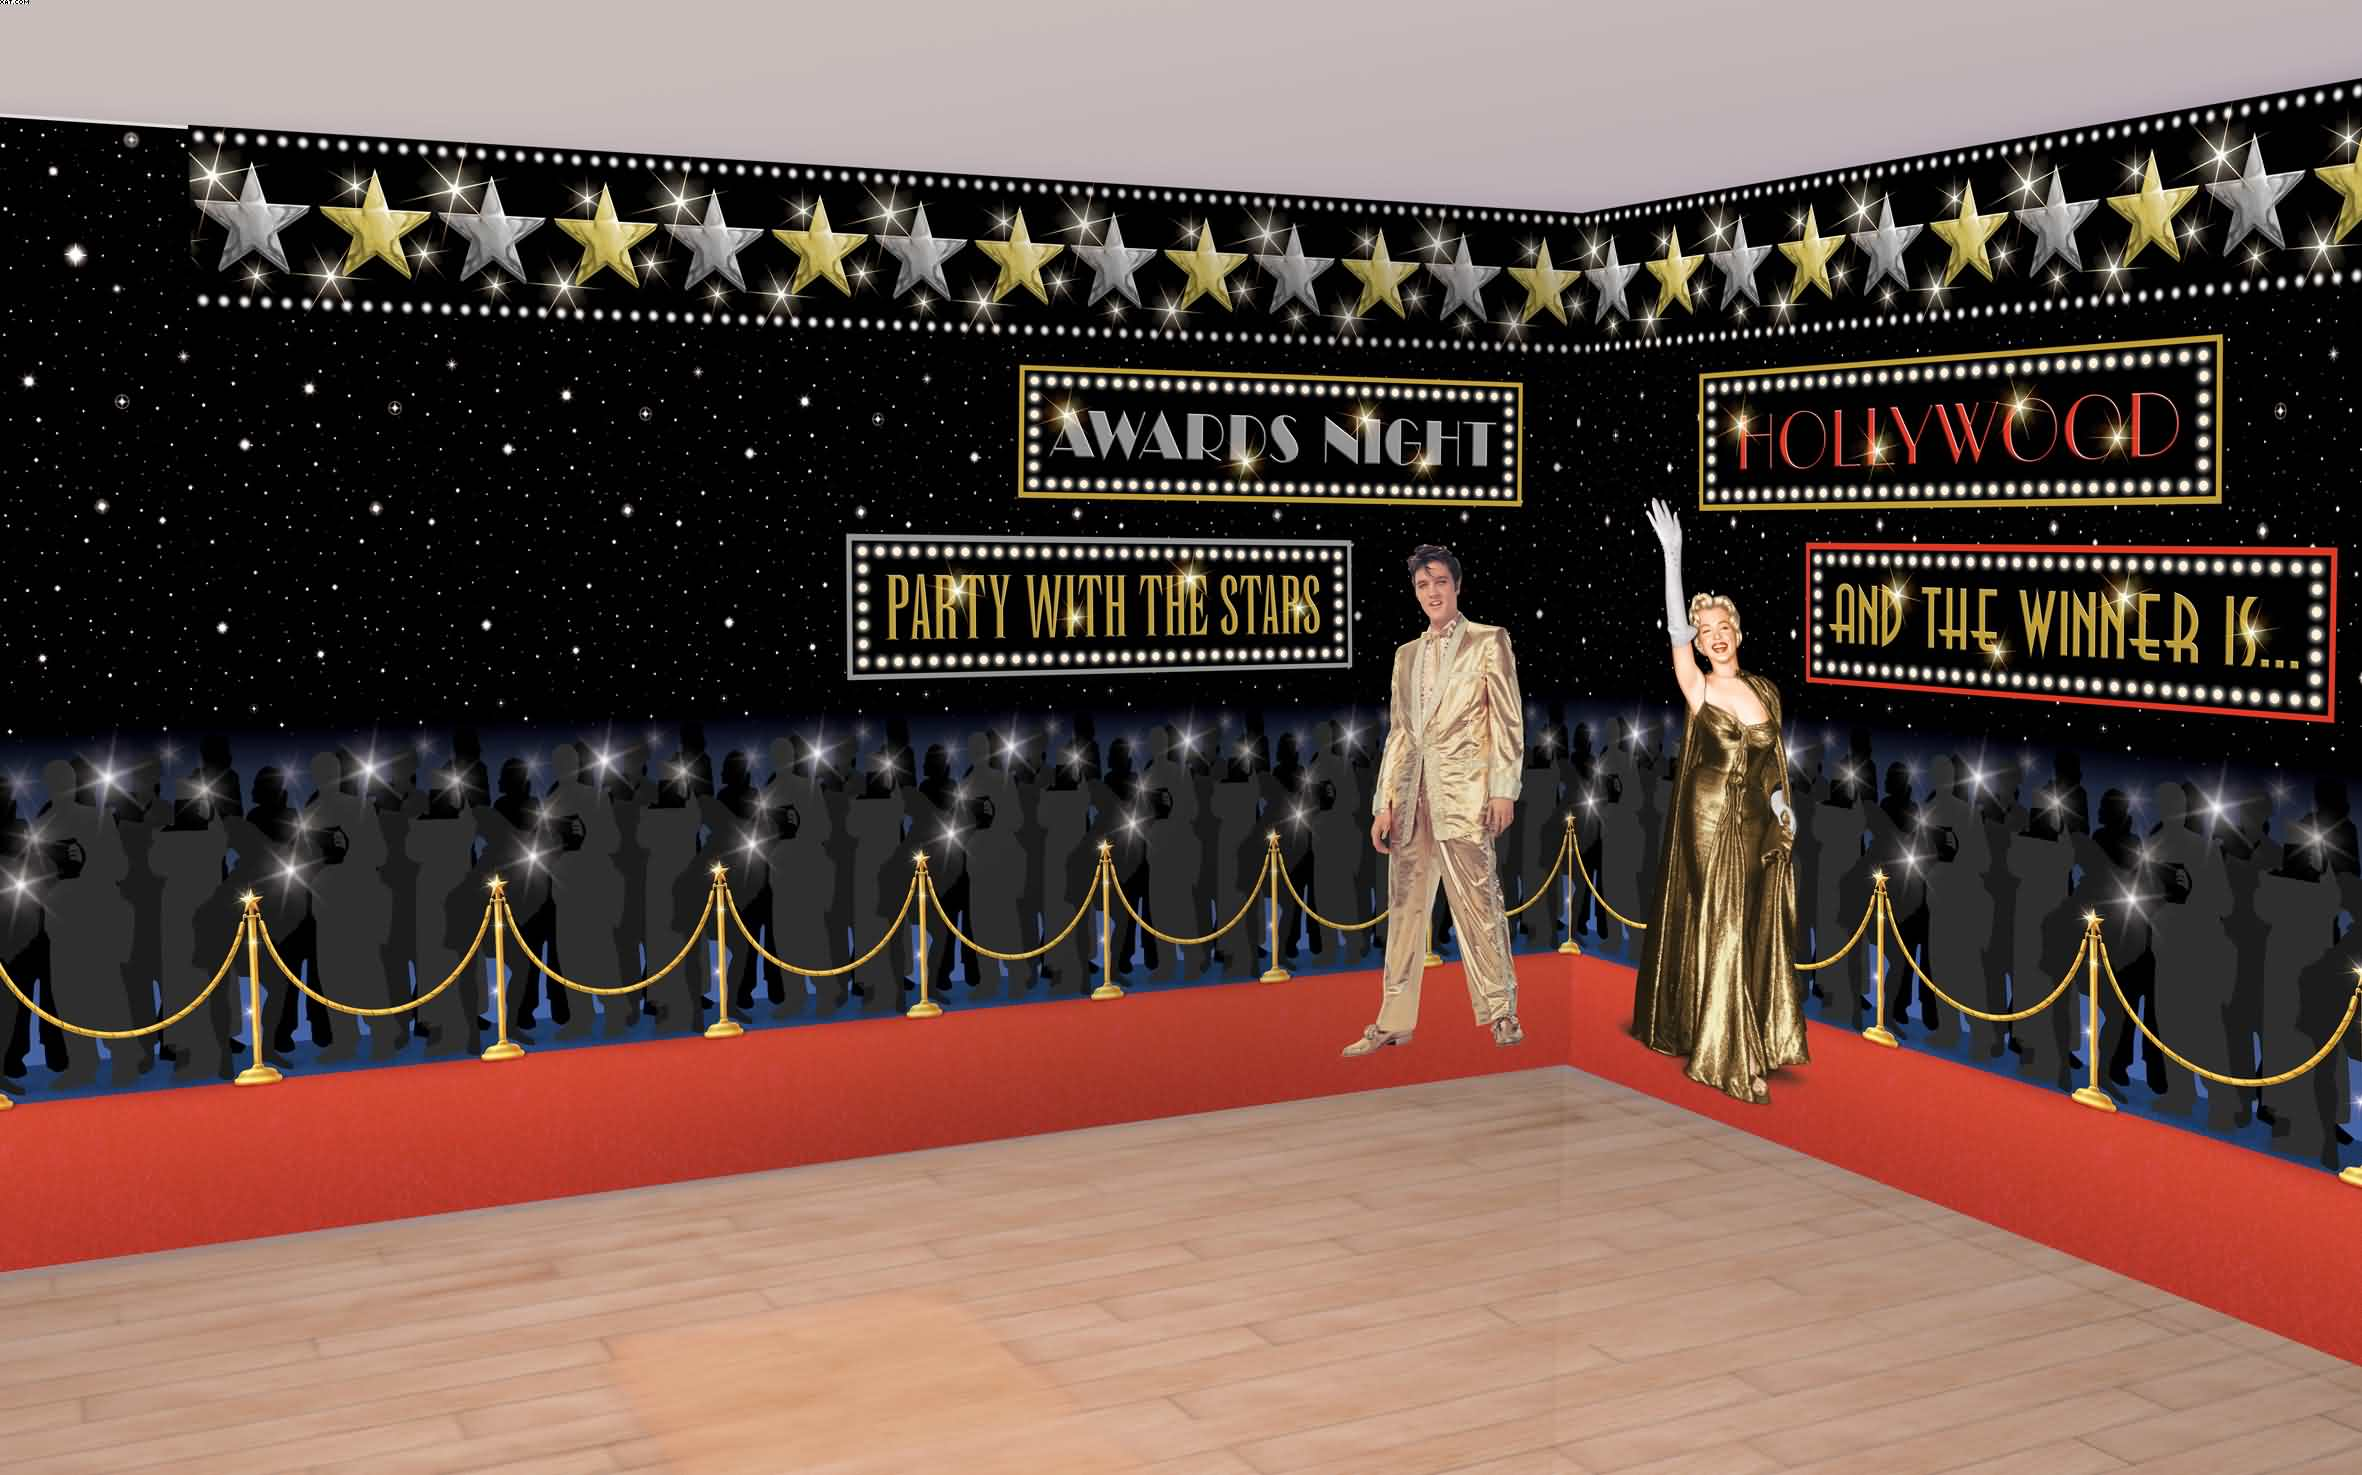 Hollywood Red Carpet Room Roll